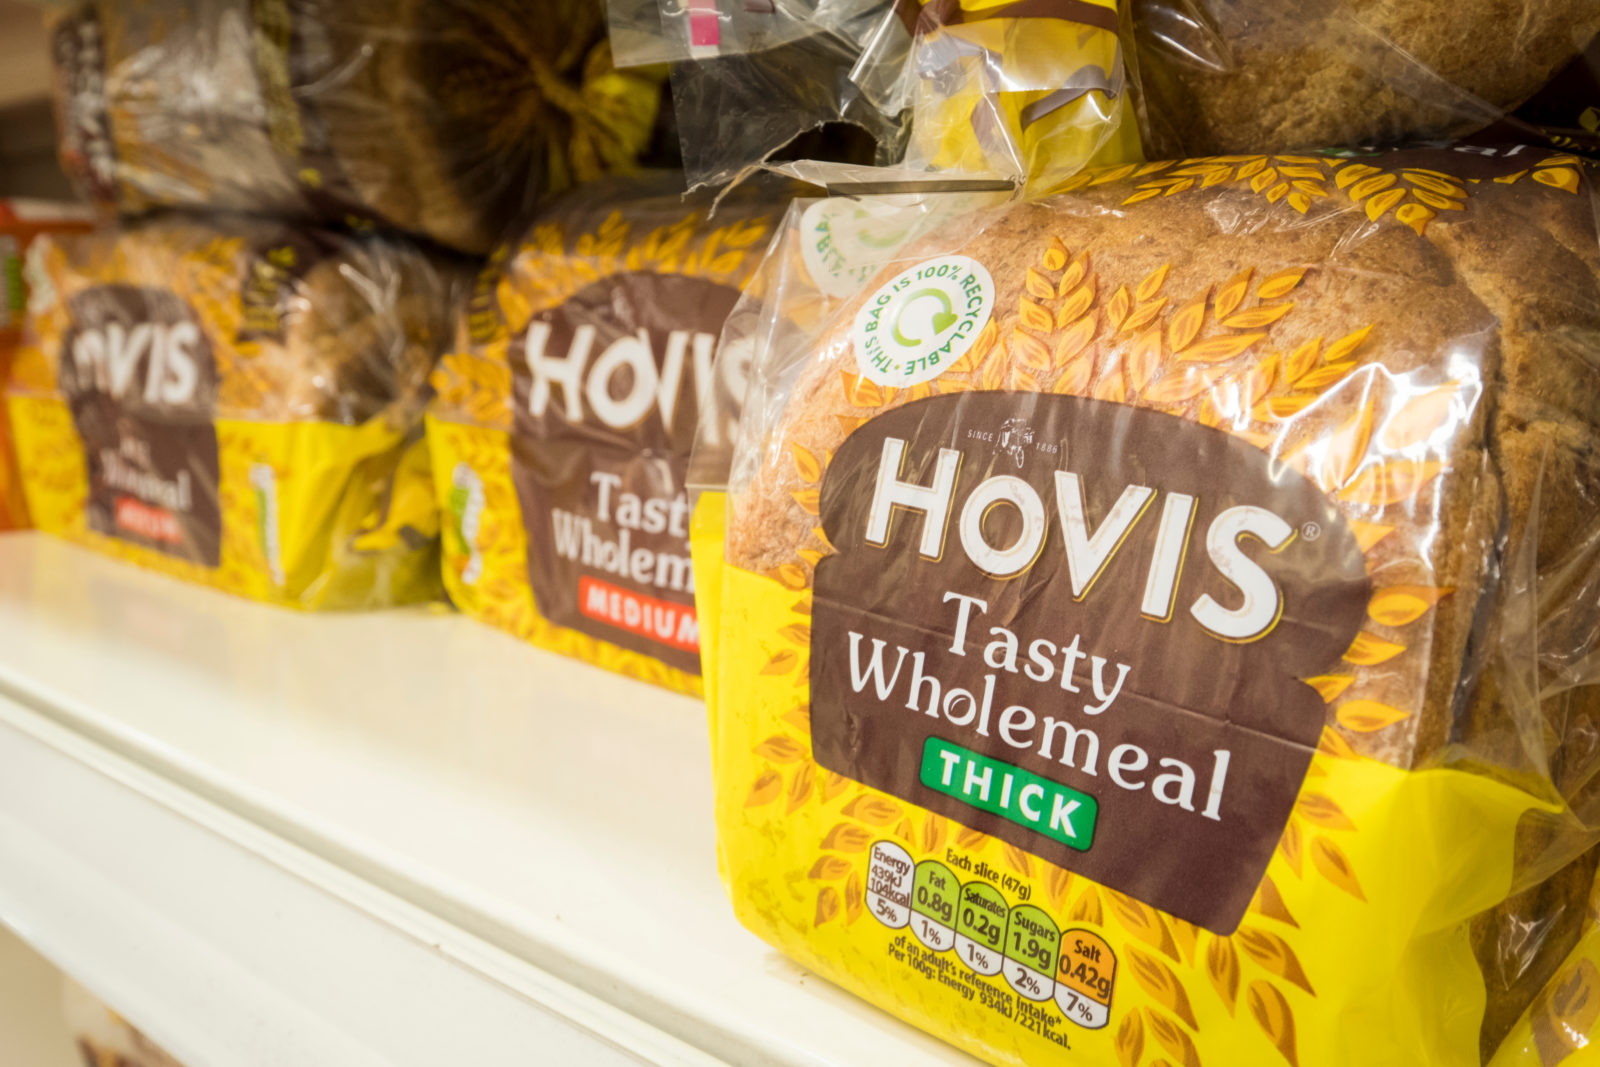 Hovis sold to private equity firm Endless